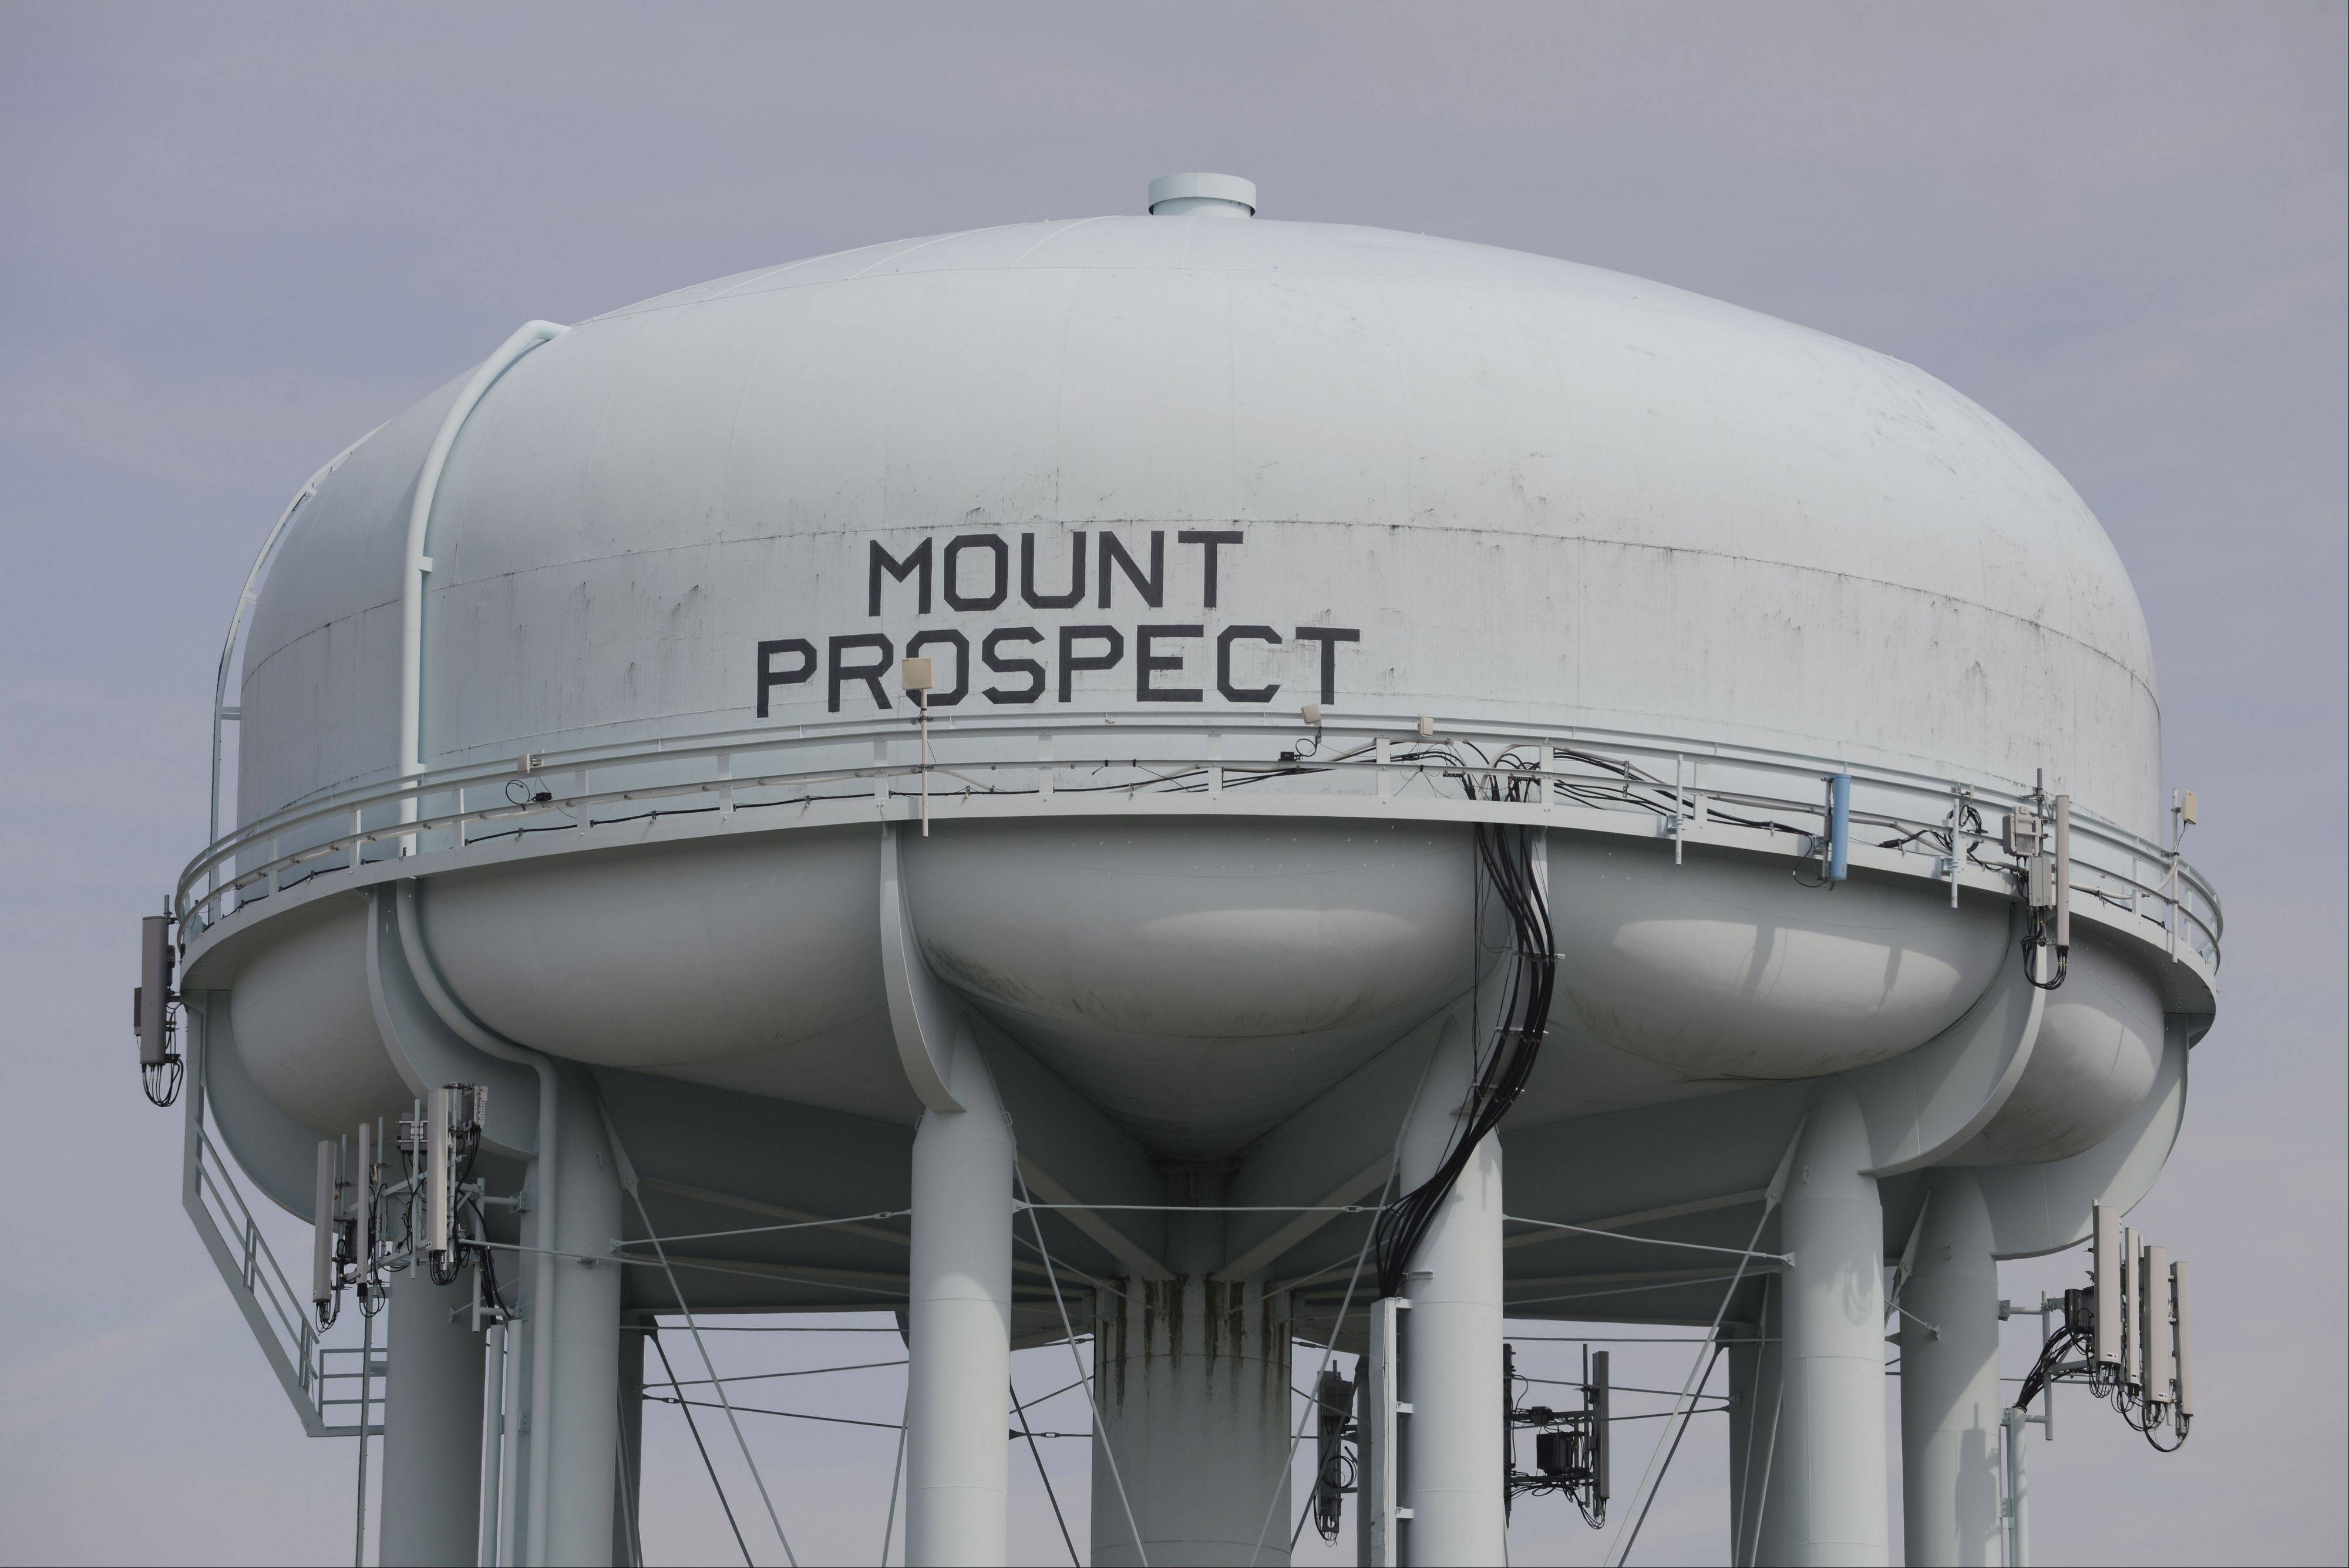 JOE LEWNARD/jlewnard@dailyherald.com Mount Prospect will repair one of its deep wells, kept as a backup in case the flow of Lake Michigan water was ever interrupted.